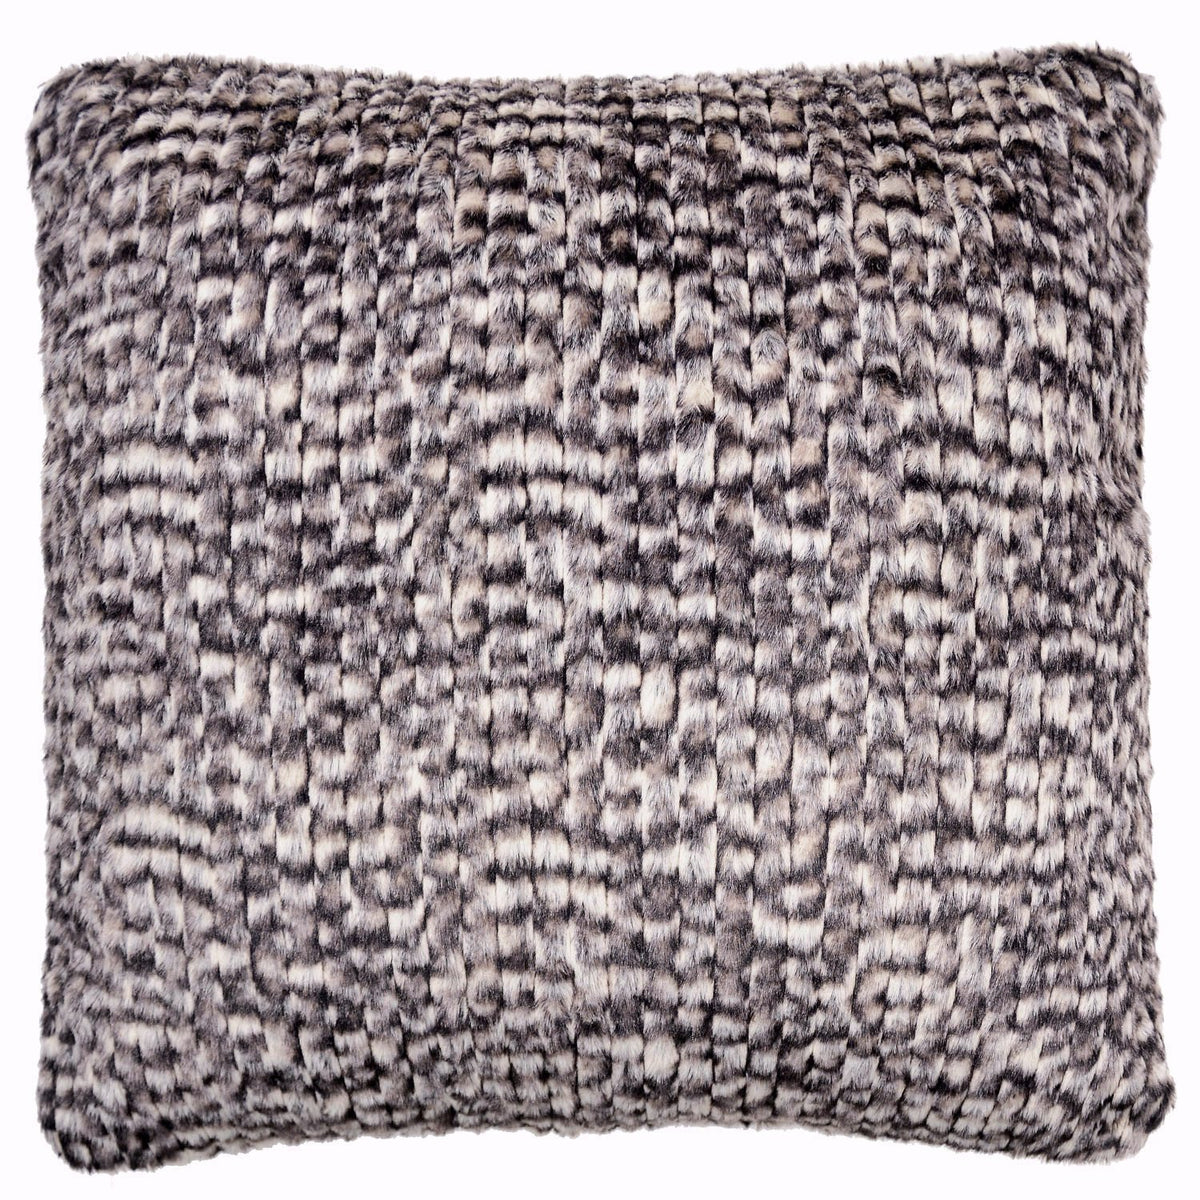 Pillow Sham - Cobblestone in Brown/Cream Faux Fur